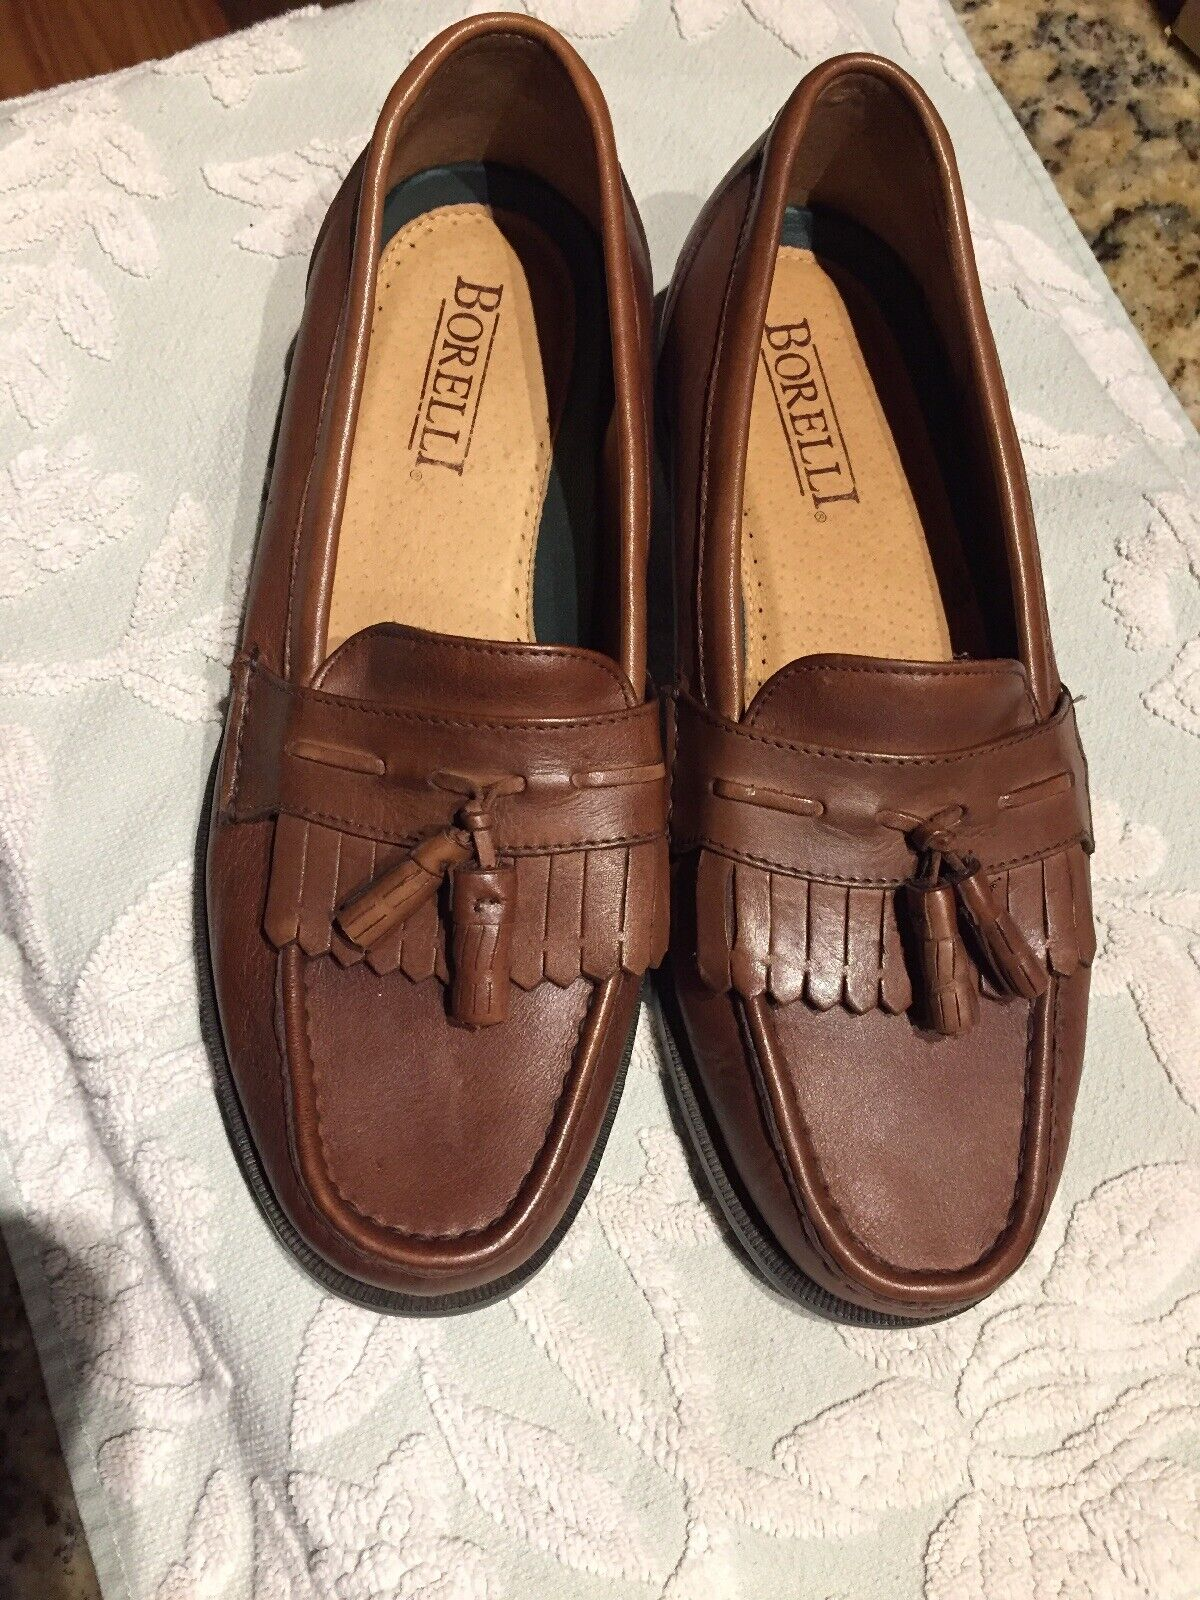 Men's Borelli Wes Kilt Marronee Leather Tassel Loafers  9 1 2 M 322010 Sautope classeiche da uomo